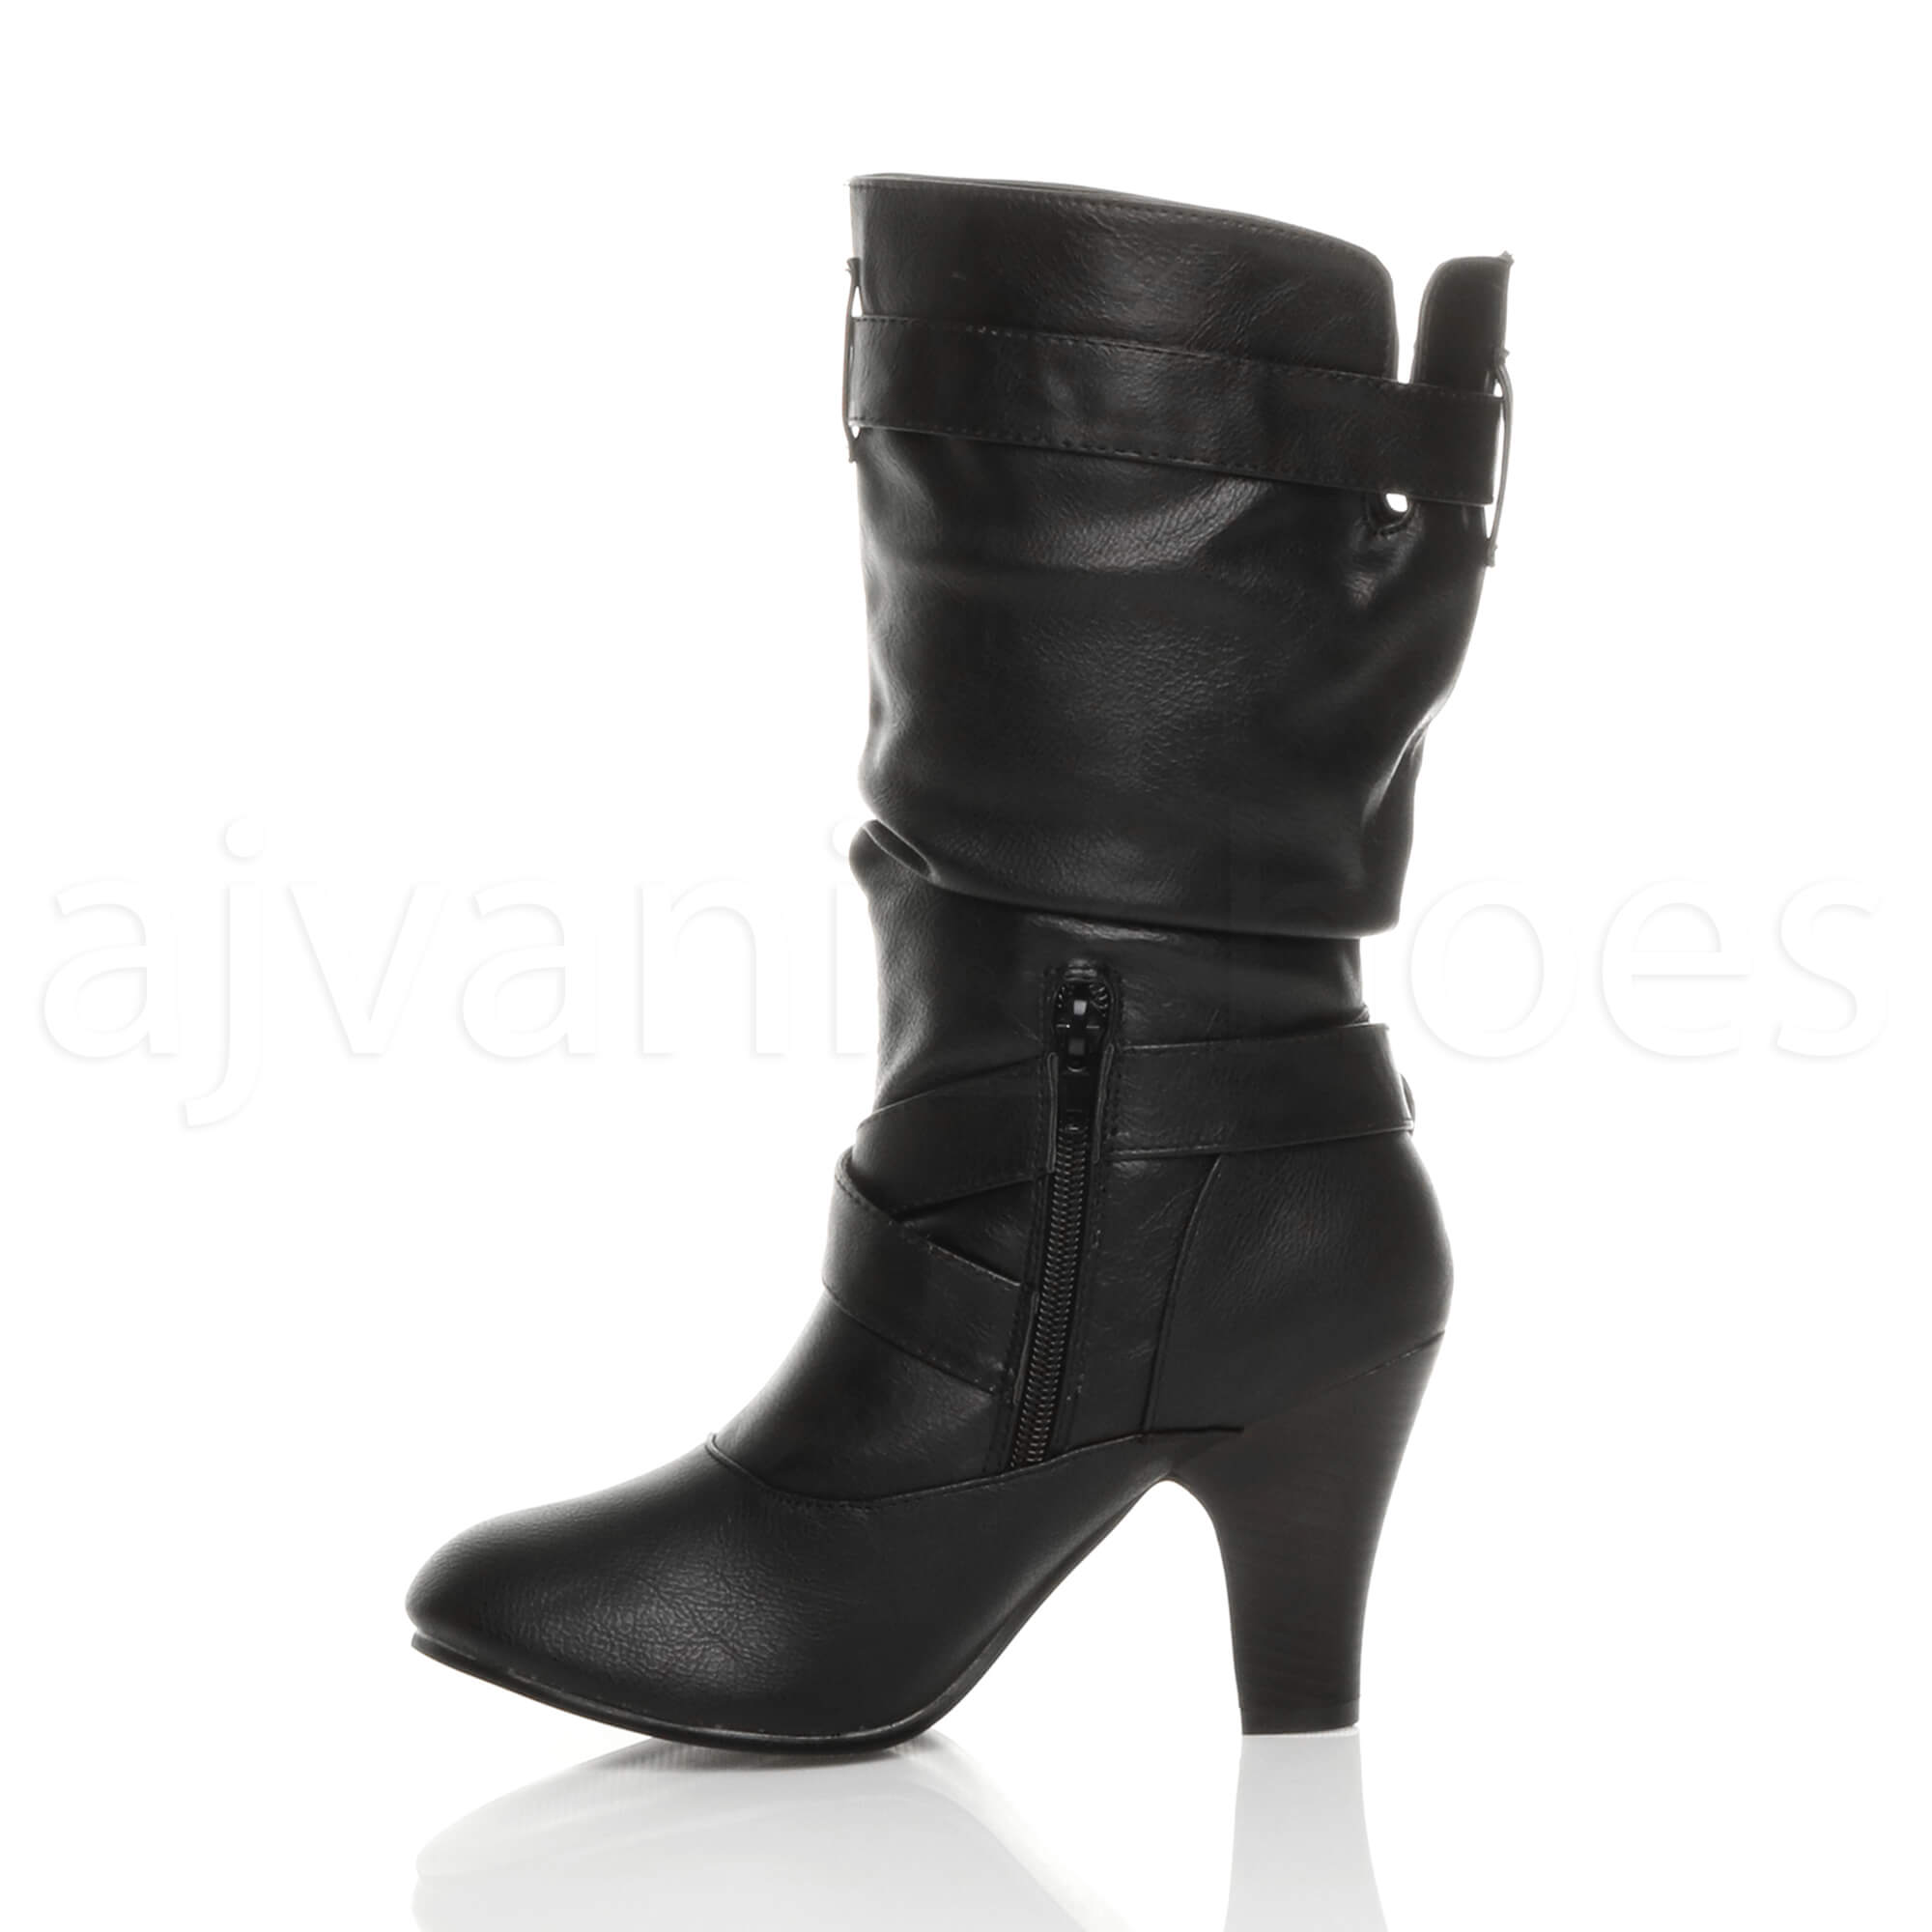 Ladies Black Heeled Shoes